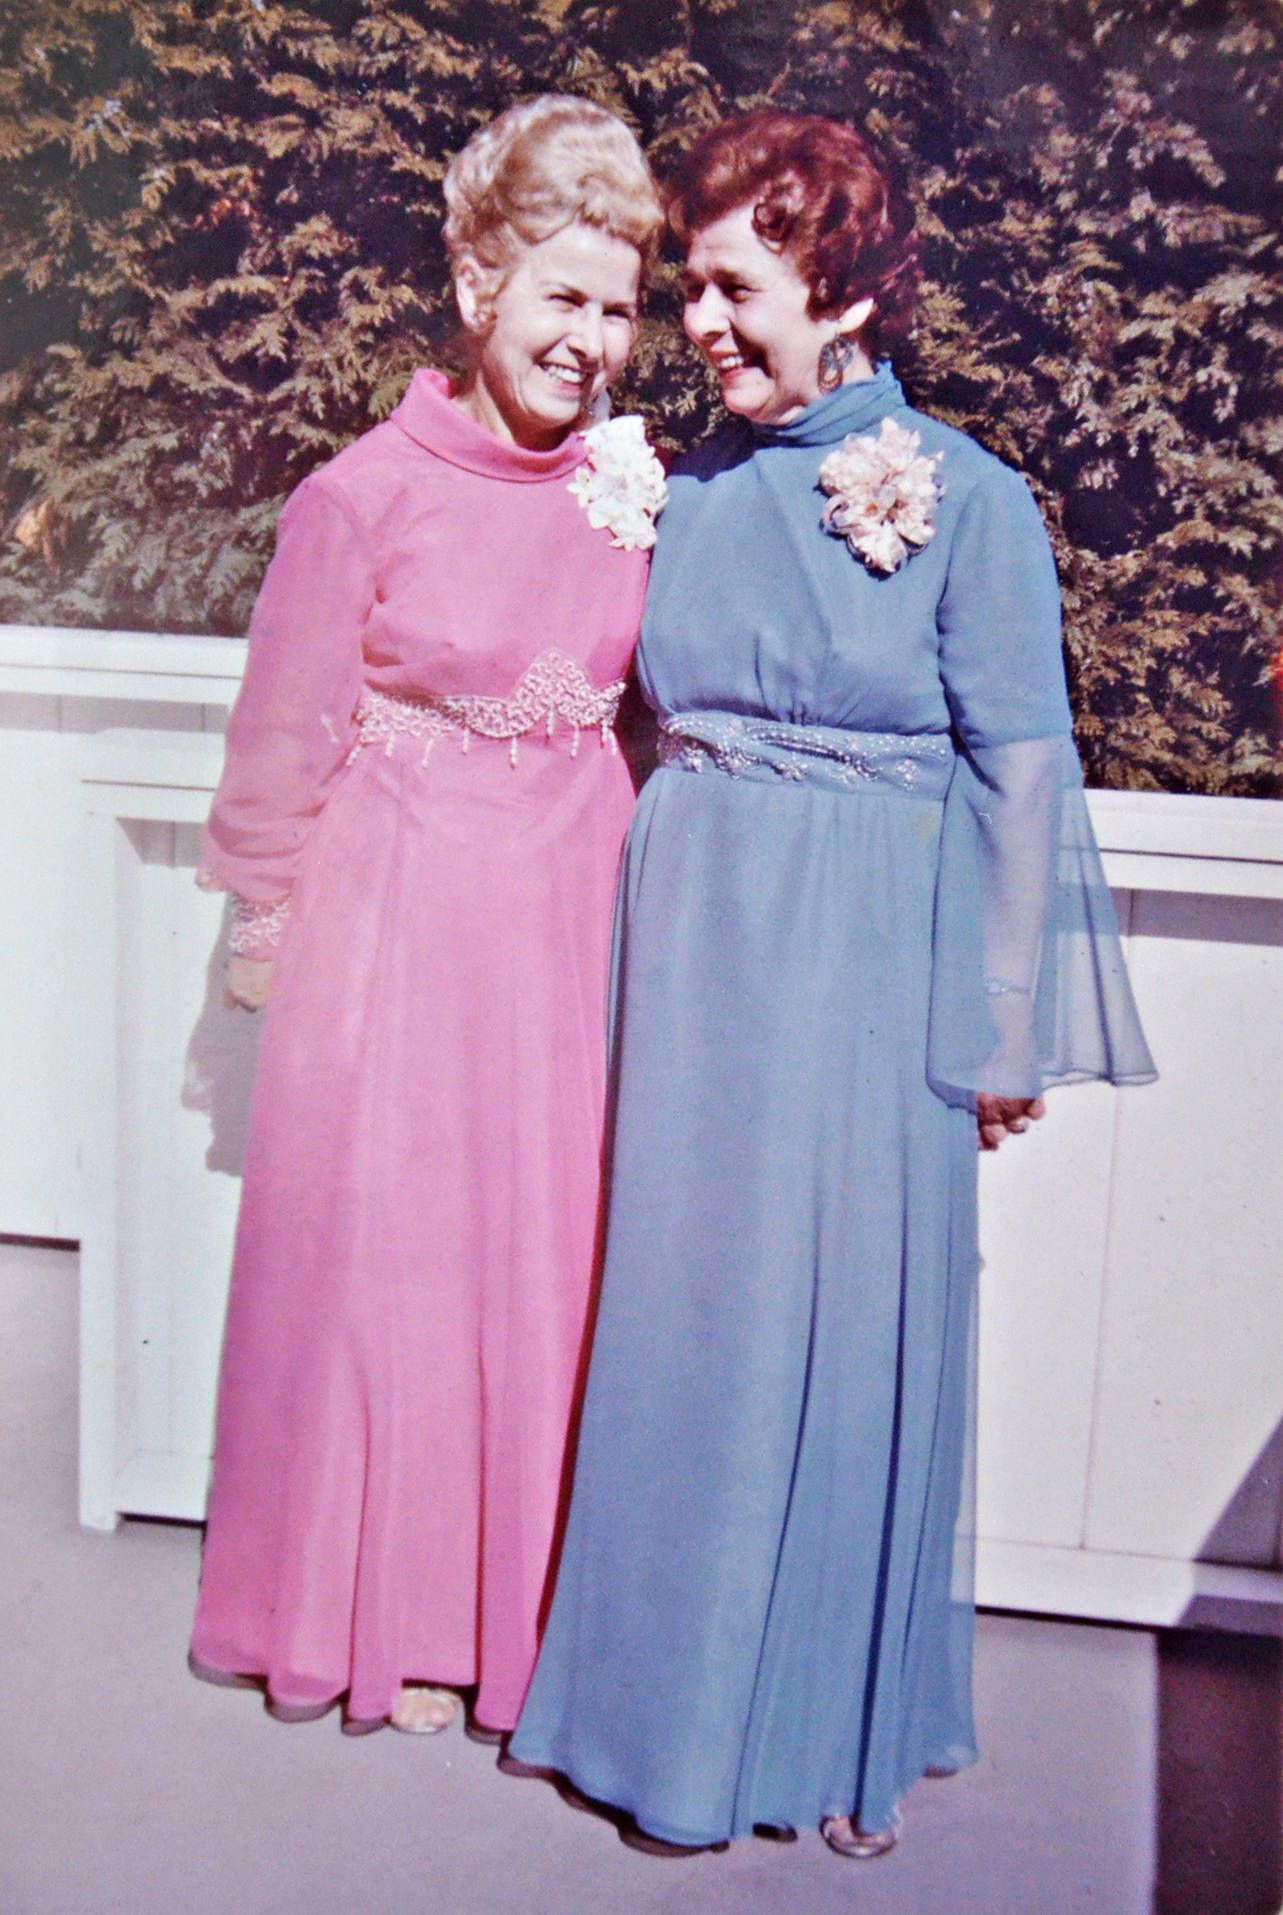 Ivy Philipps and her sister on her wedding day in the 1960s. (Family photo/Special to the Langley Advance Times)